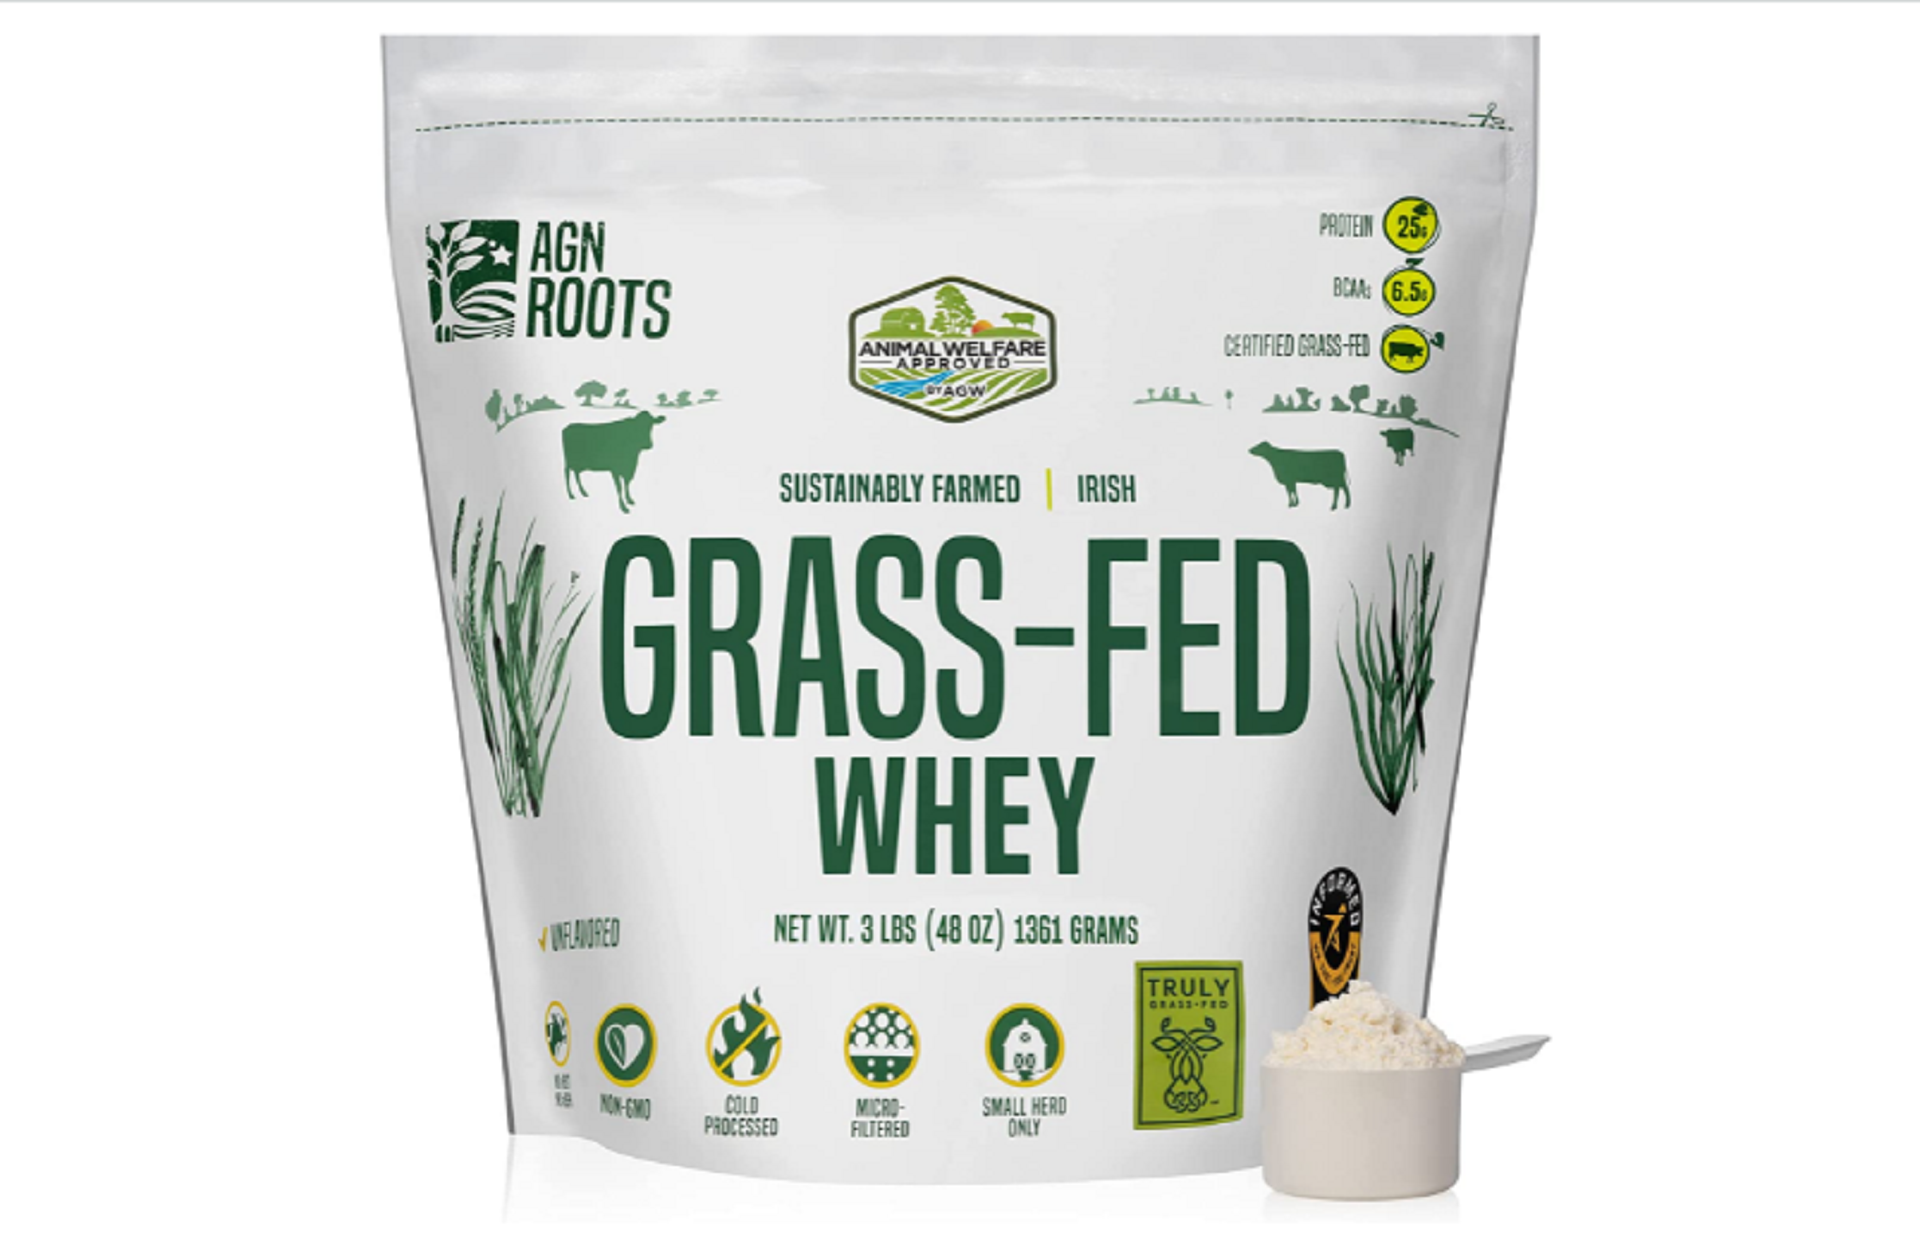 agn roots grass-fed whey